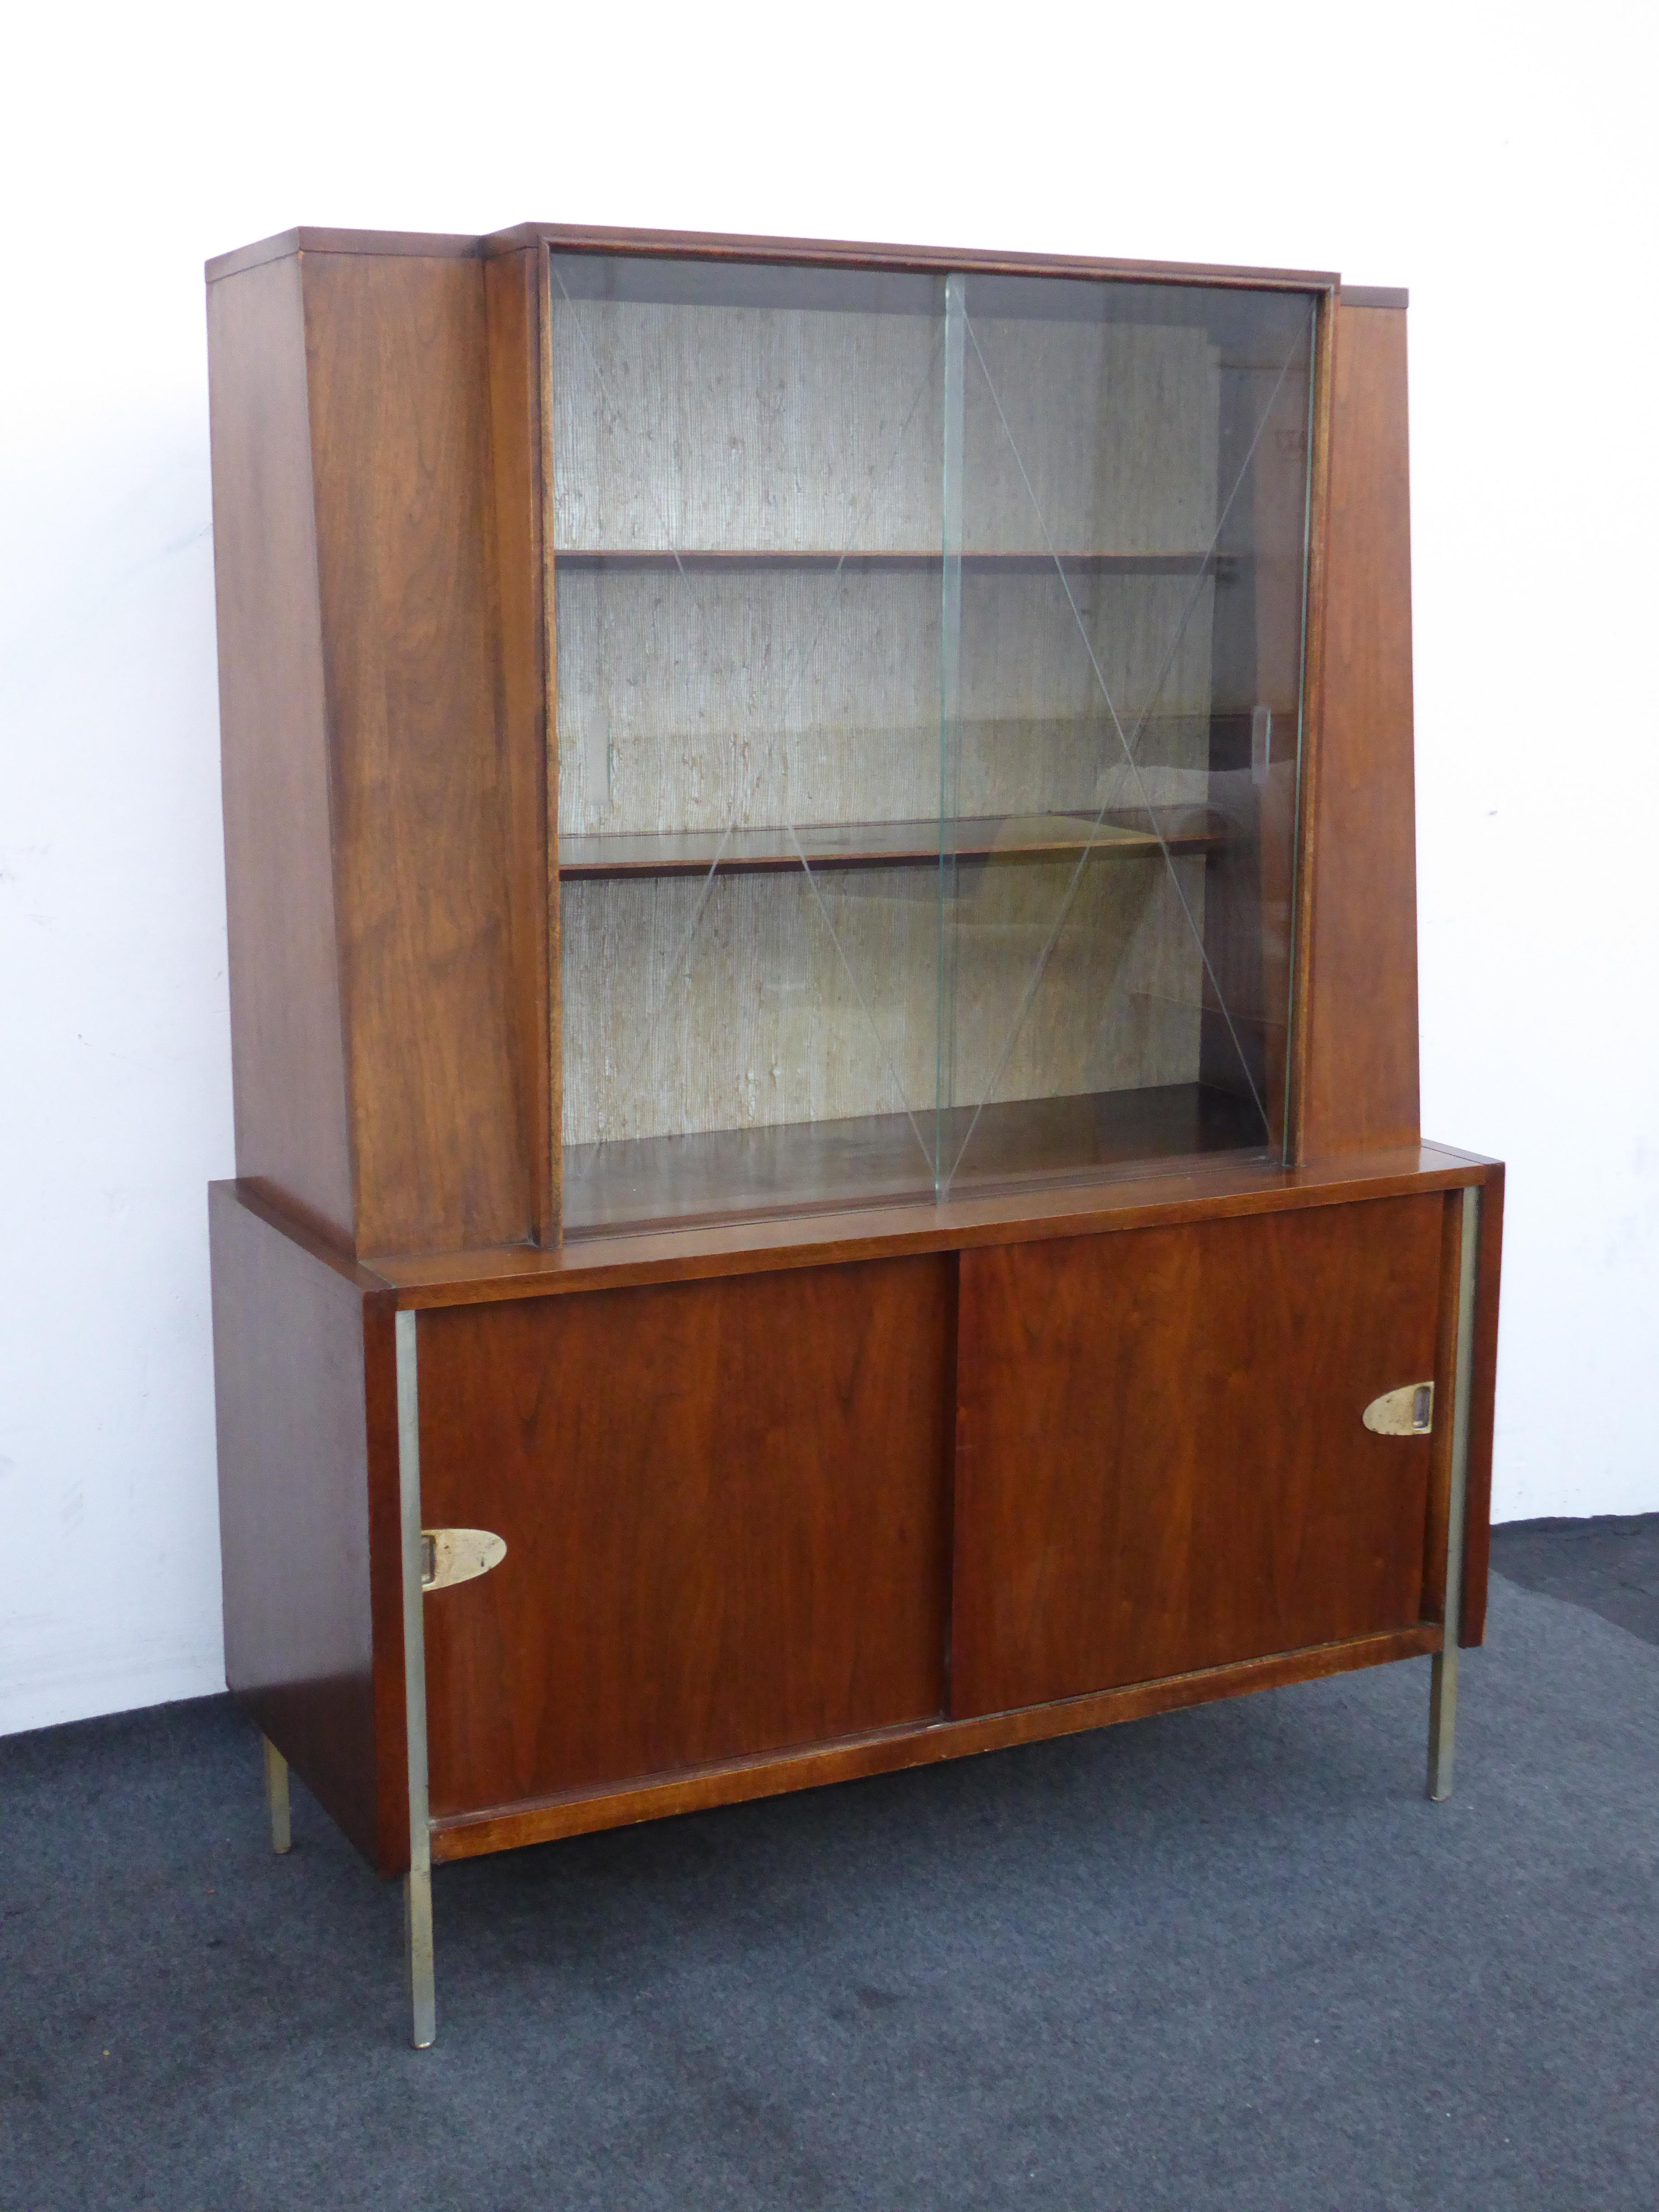 vintage mid century modern hutch display cabinet with etched glass doors by mengel image 5